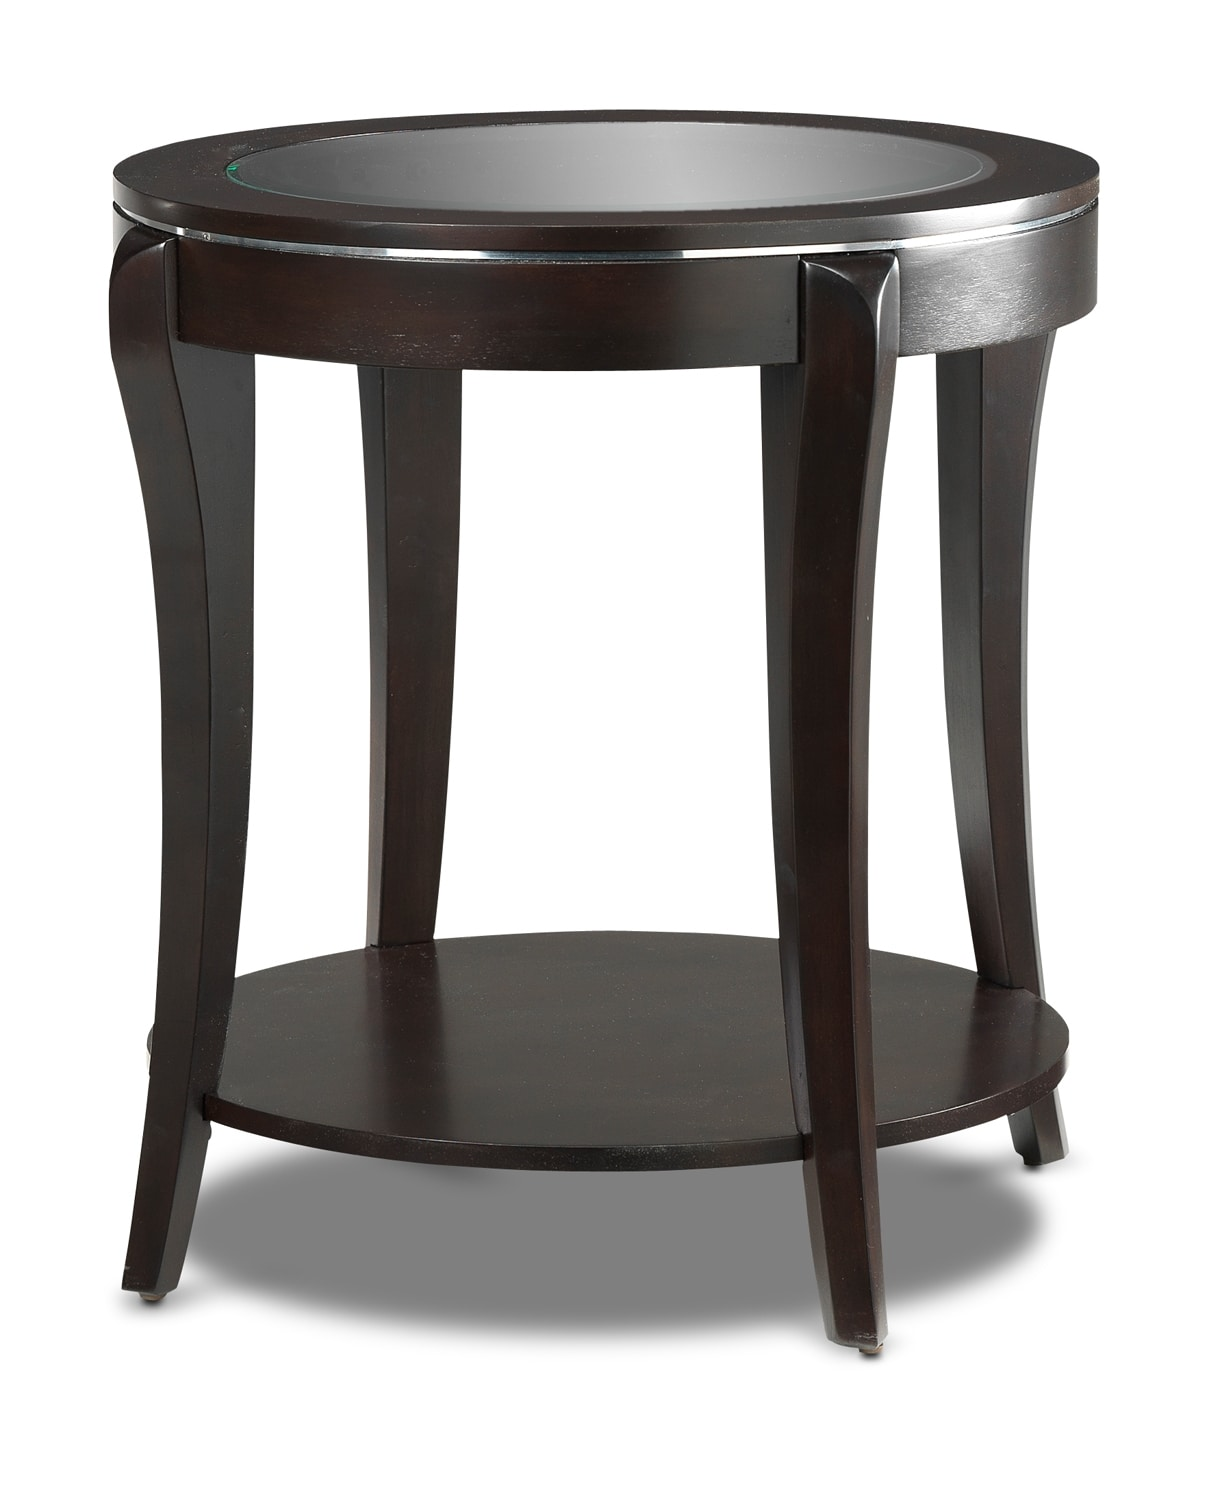 Accent and Occasional Furniture - Taurus End Table - Espresso